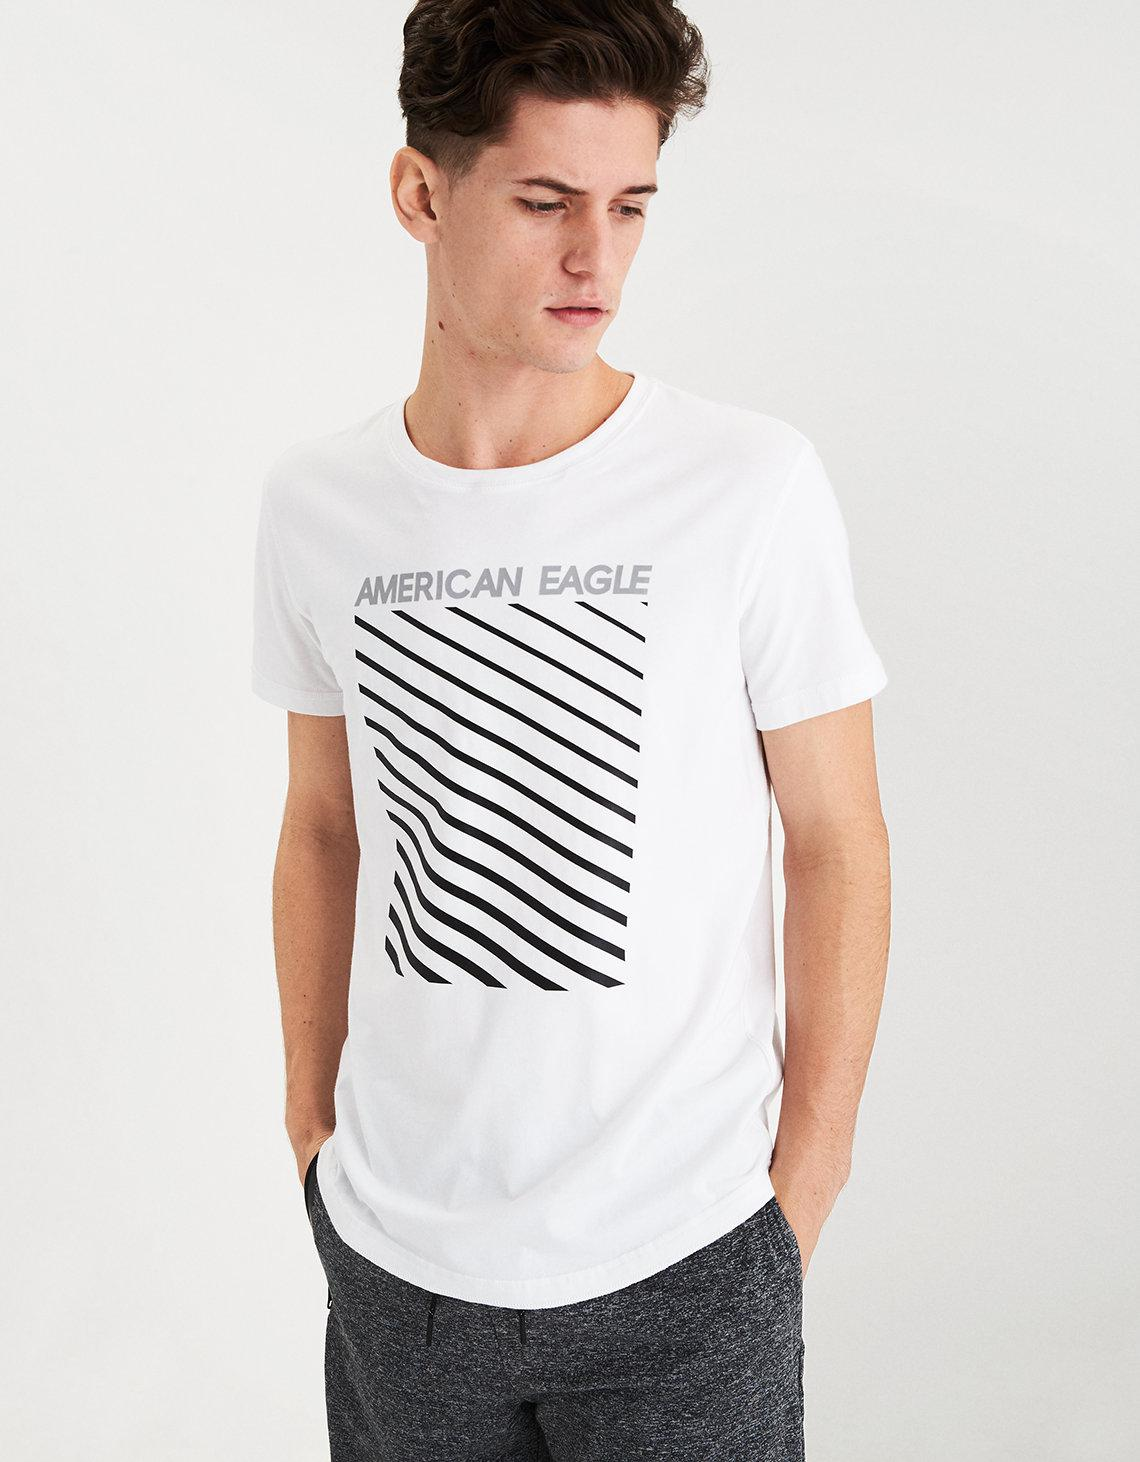 e089d80d84c4 Lyst - American Eagle Ae Active Flex Graphic T-shirt in White for Men